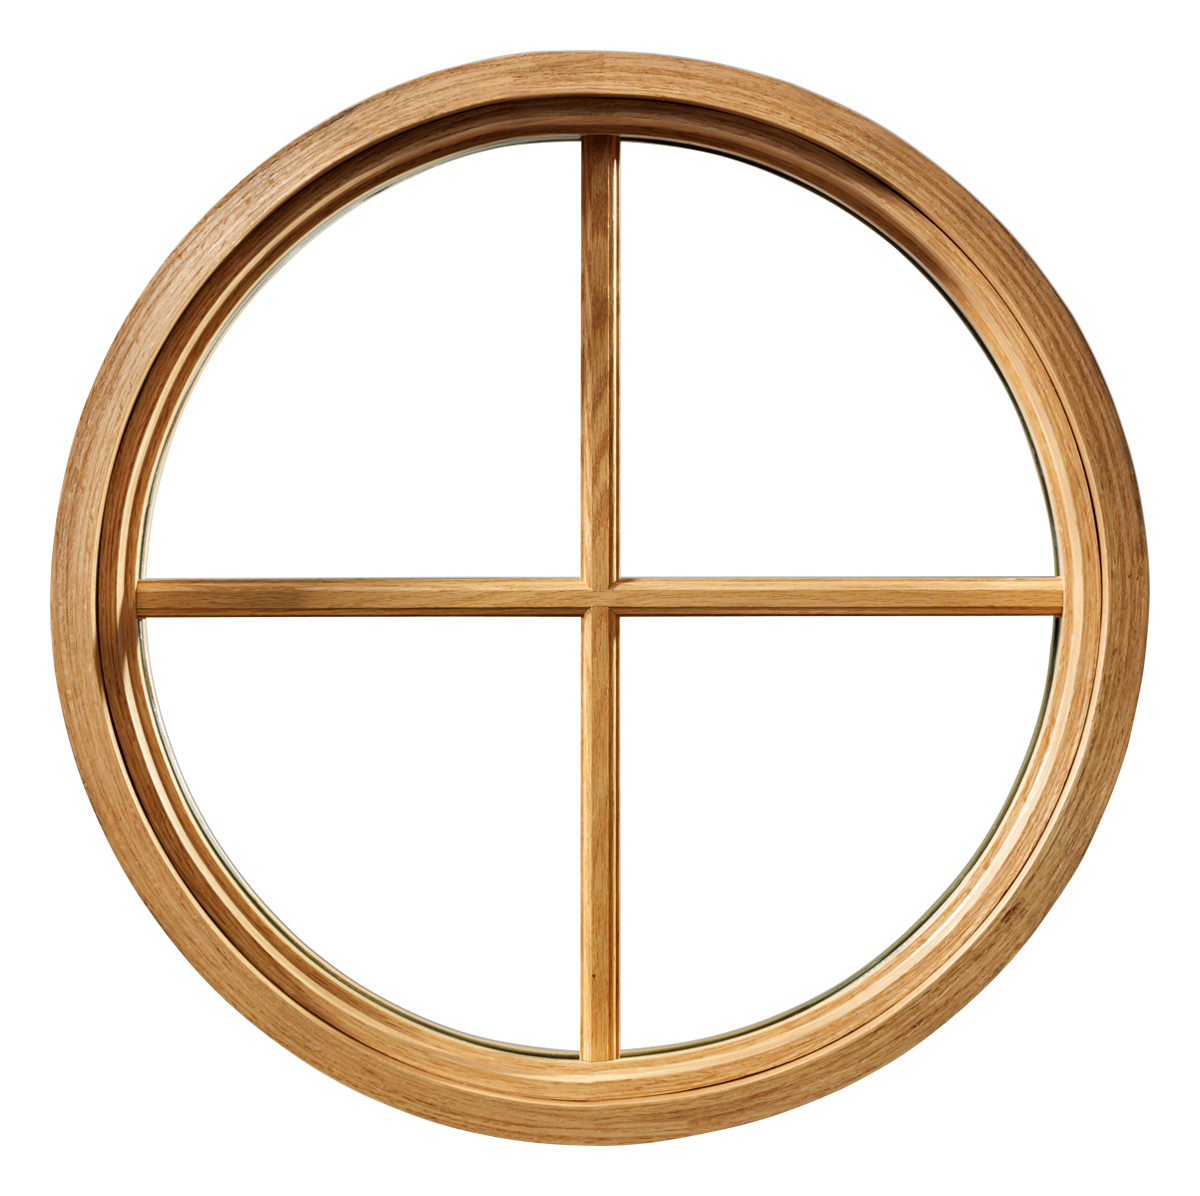 Round windows png. Team fortress window weapon